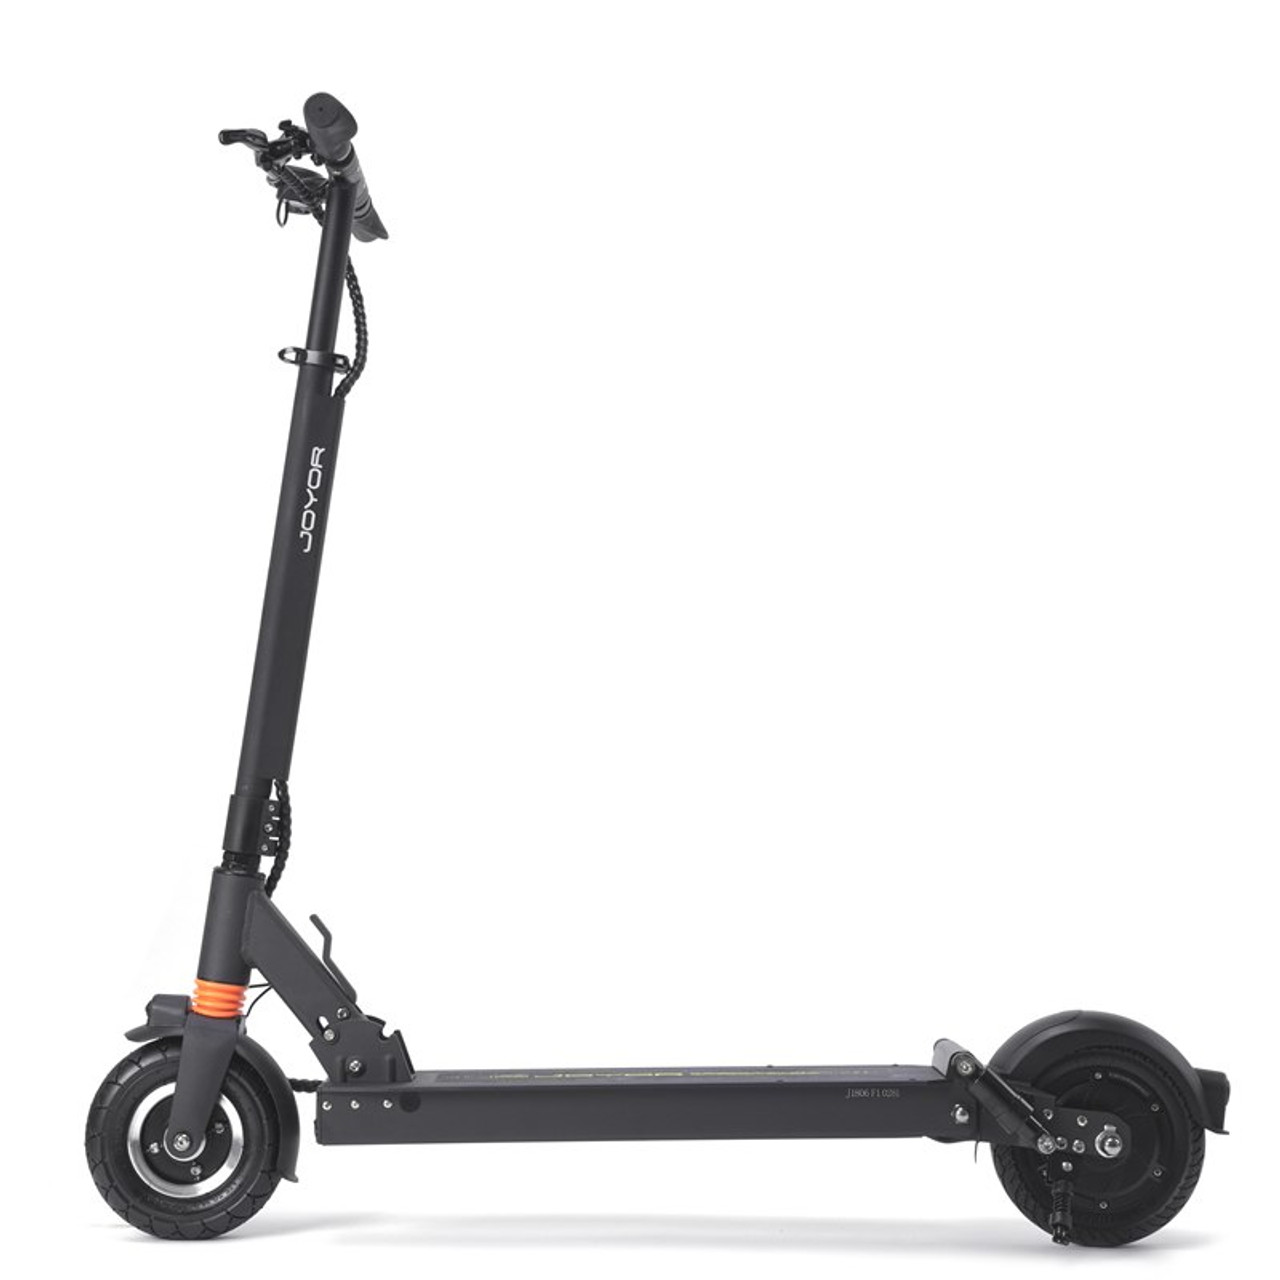 F6 36 9 Miles Long-Range Electric Scooter - Black